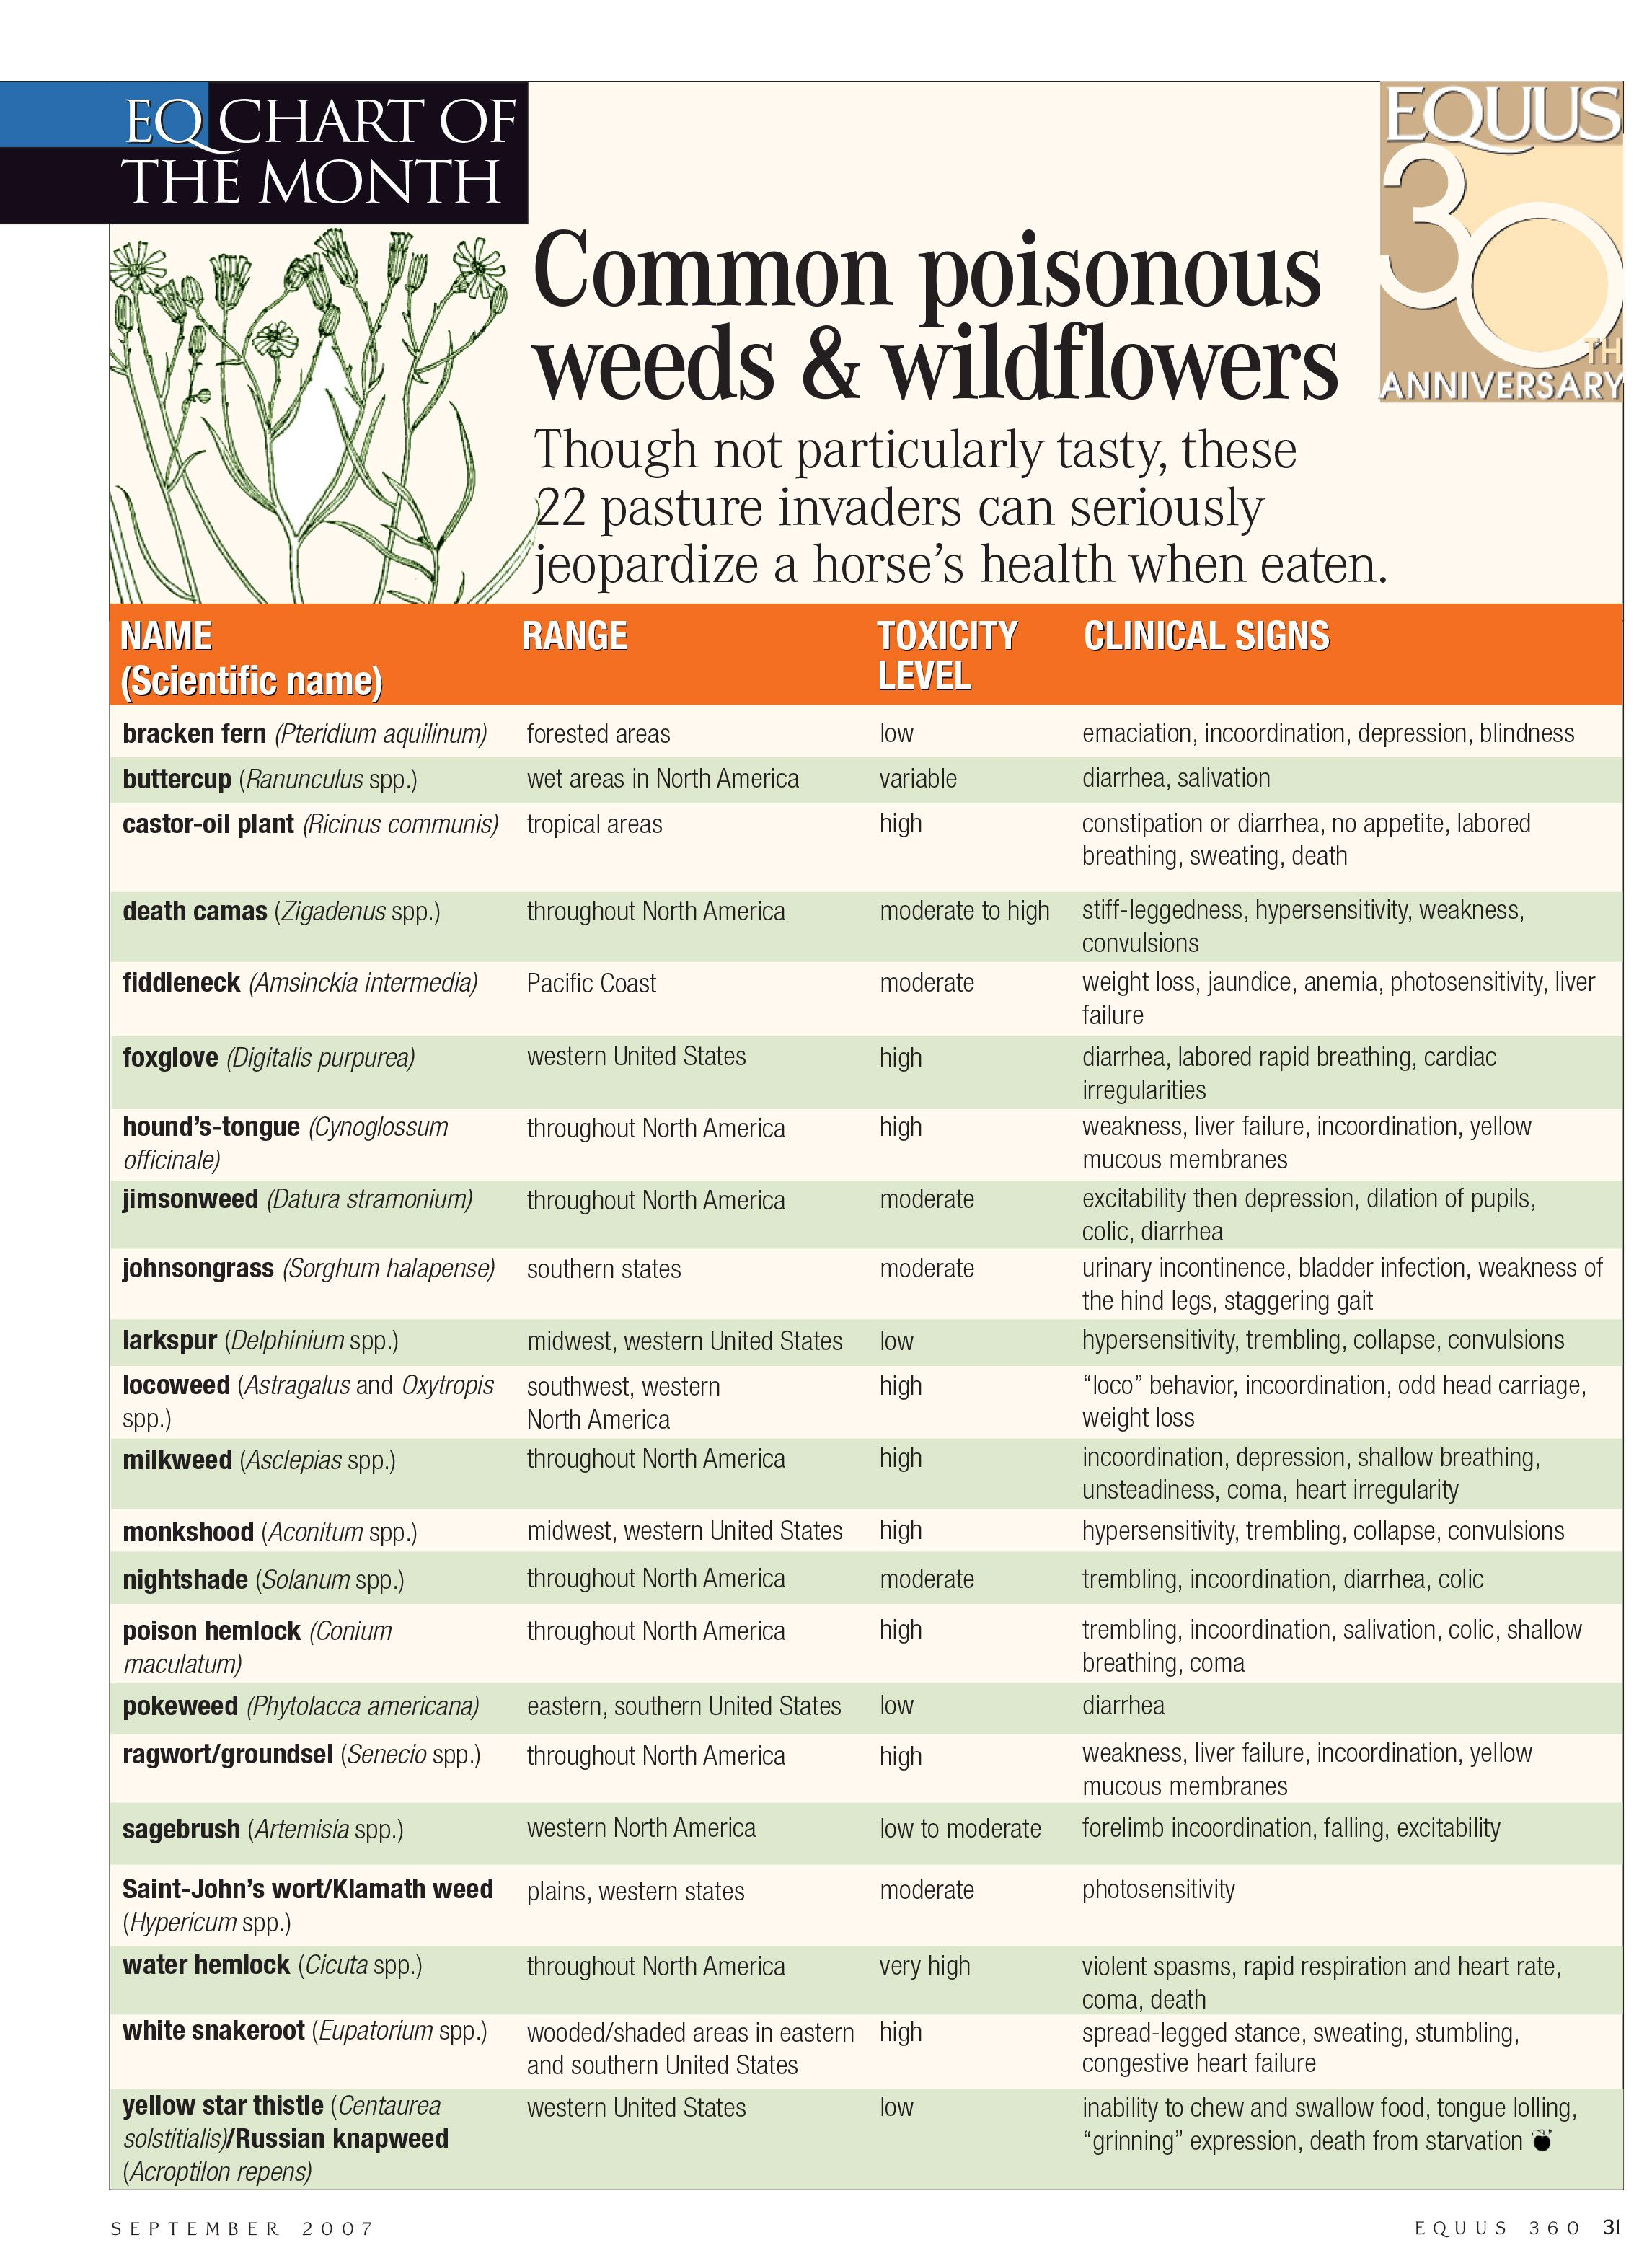 Check out this list of common pasture invaders that may be dangerous ...